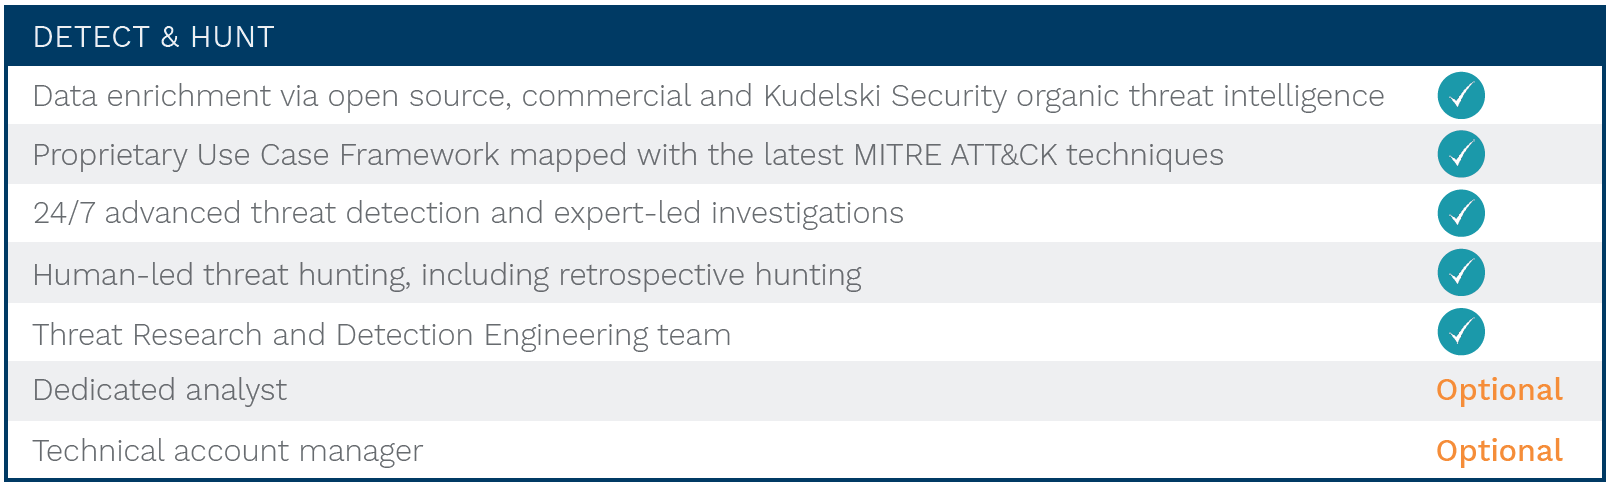 MDR_Detect_Hunt_Feature